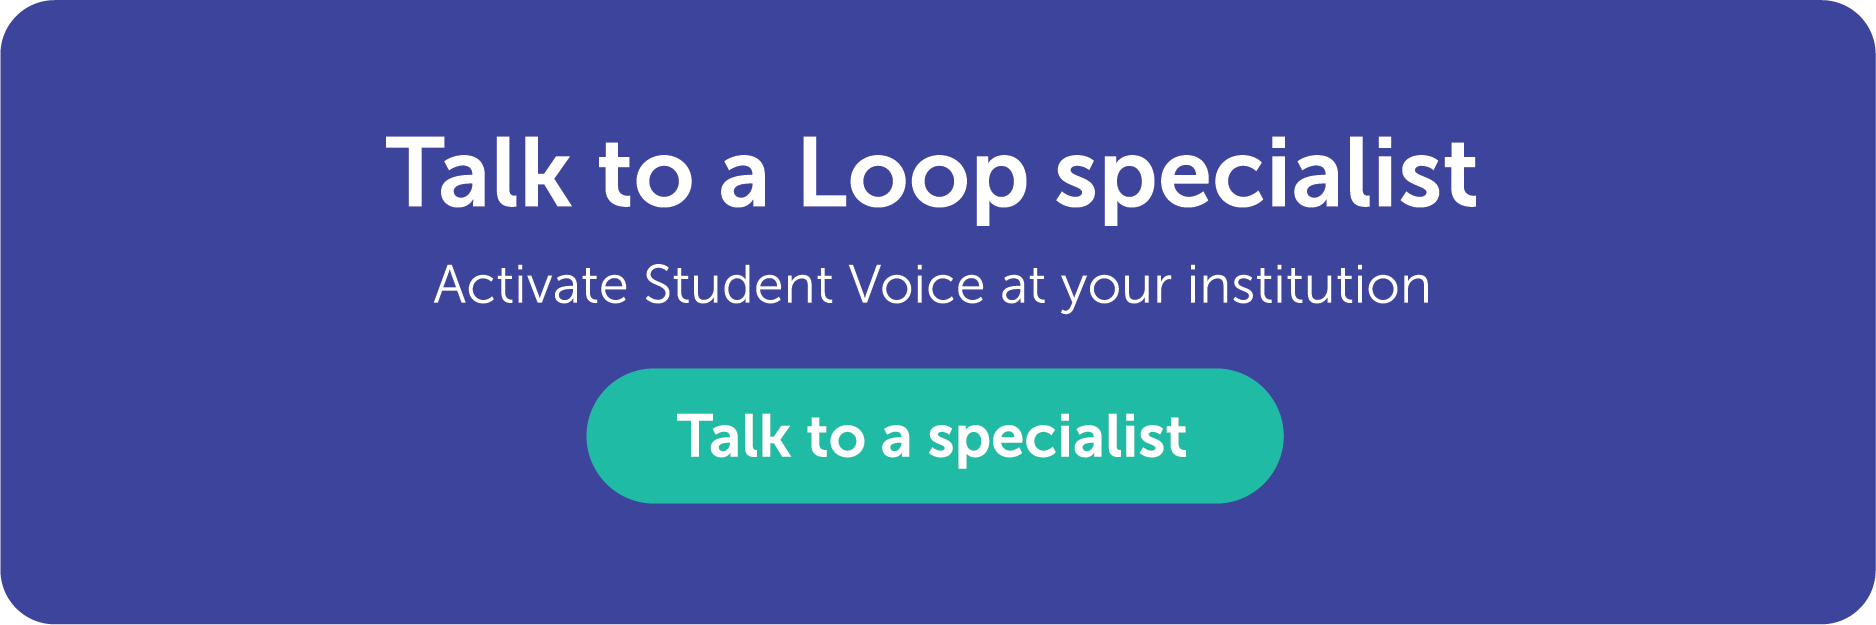 Talk to a Loop specialist